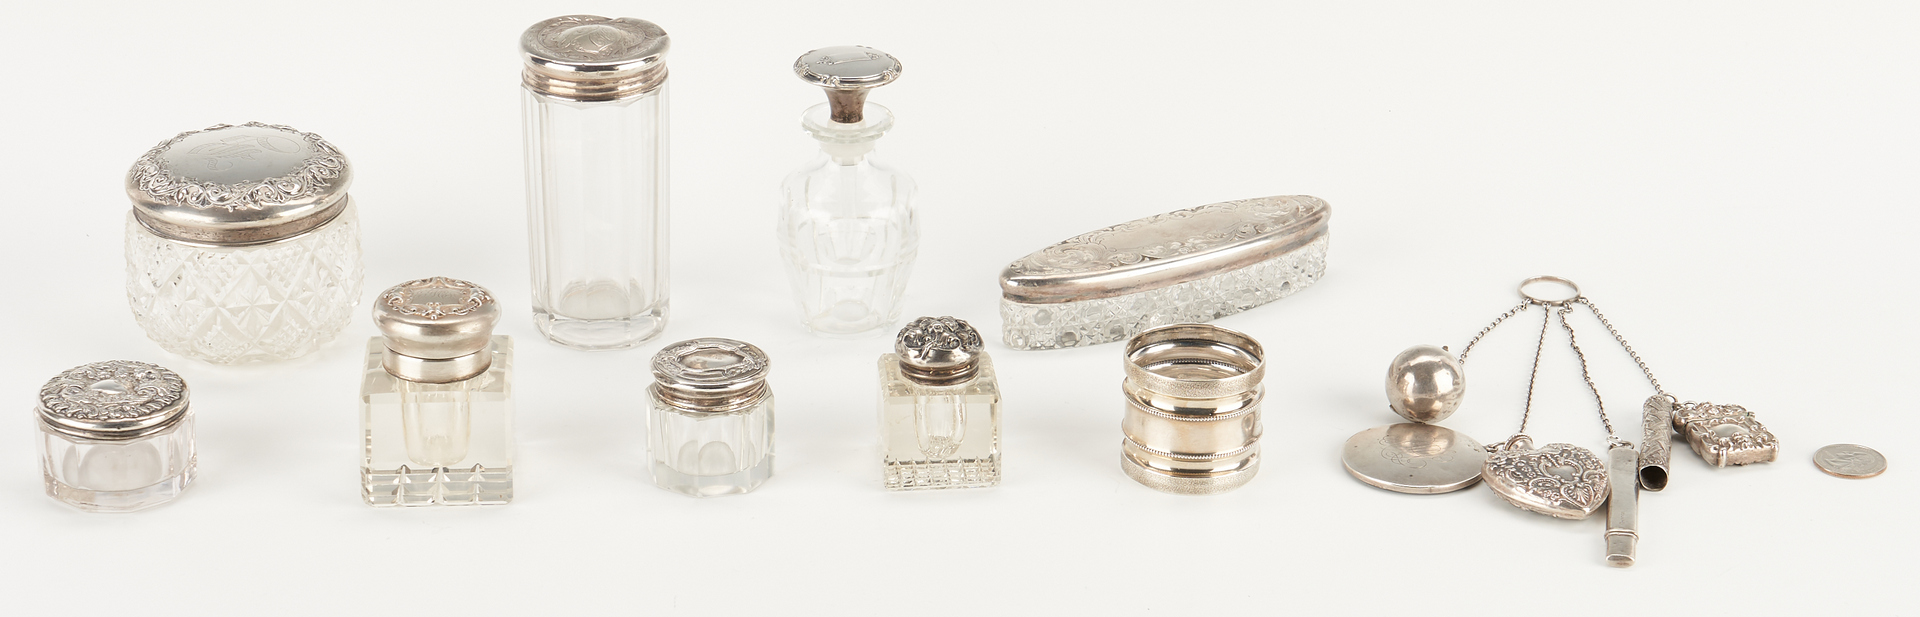 Lot 934: Silver Chatelaine and Vanity Items – 10 items total